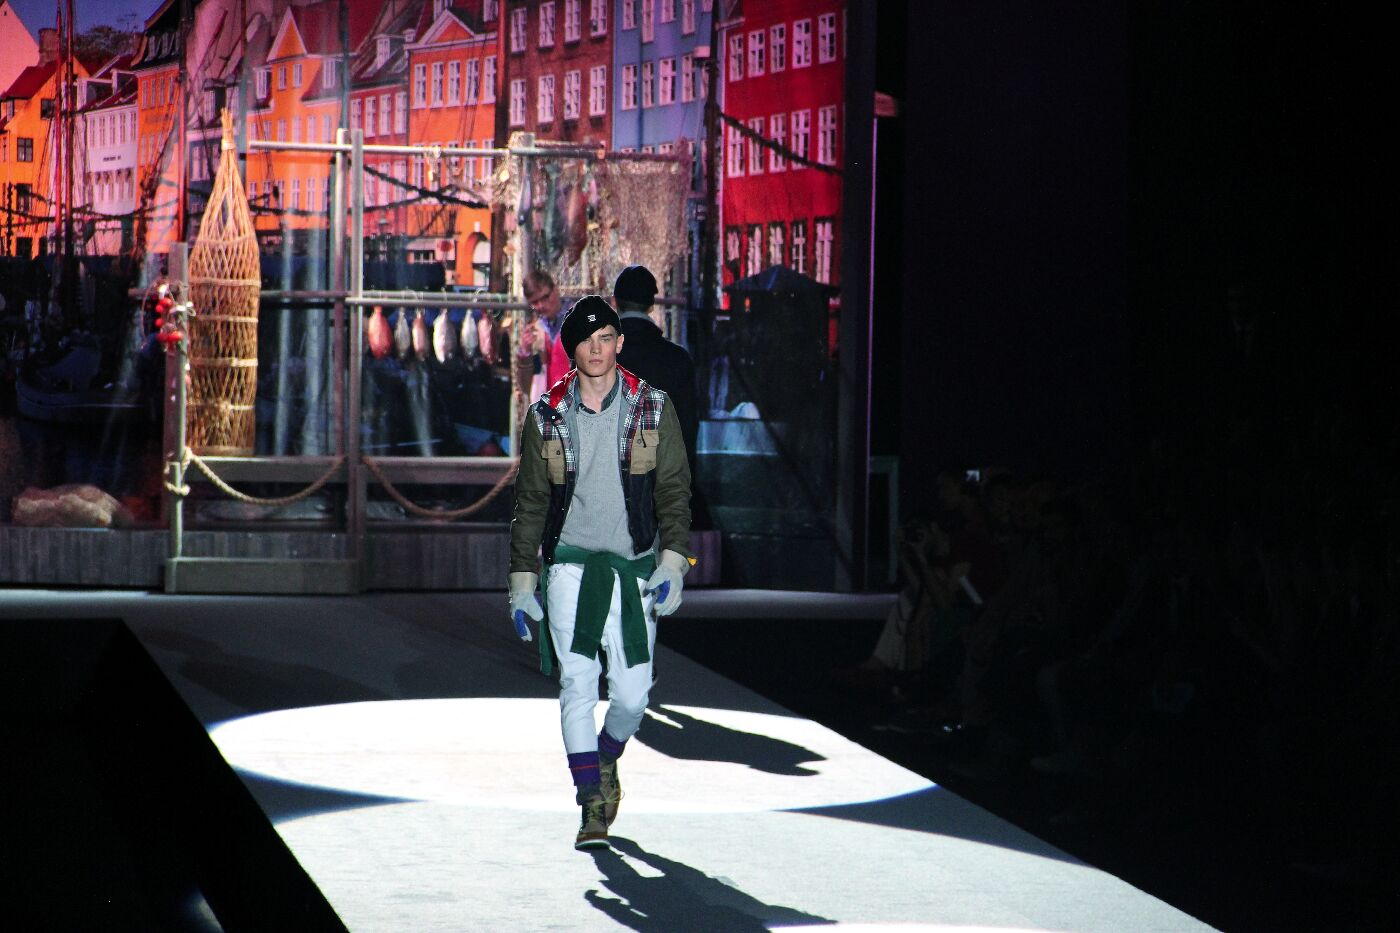 dsquared2-spring-summer-2012-men-collection-milano-fashion-week-2012-dsquared2-fashion-show-catwalk